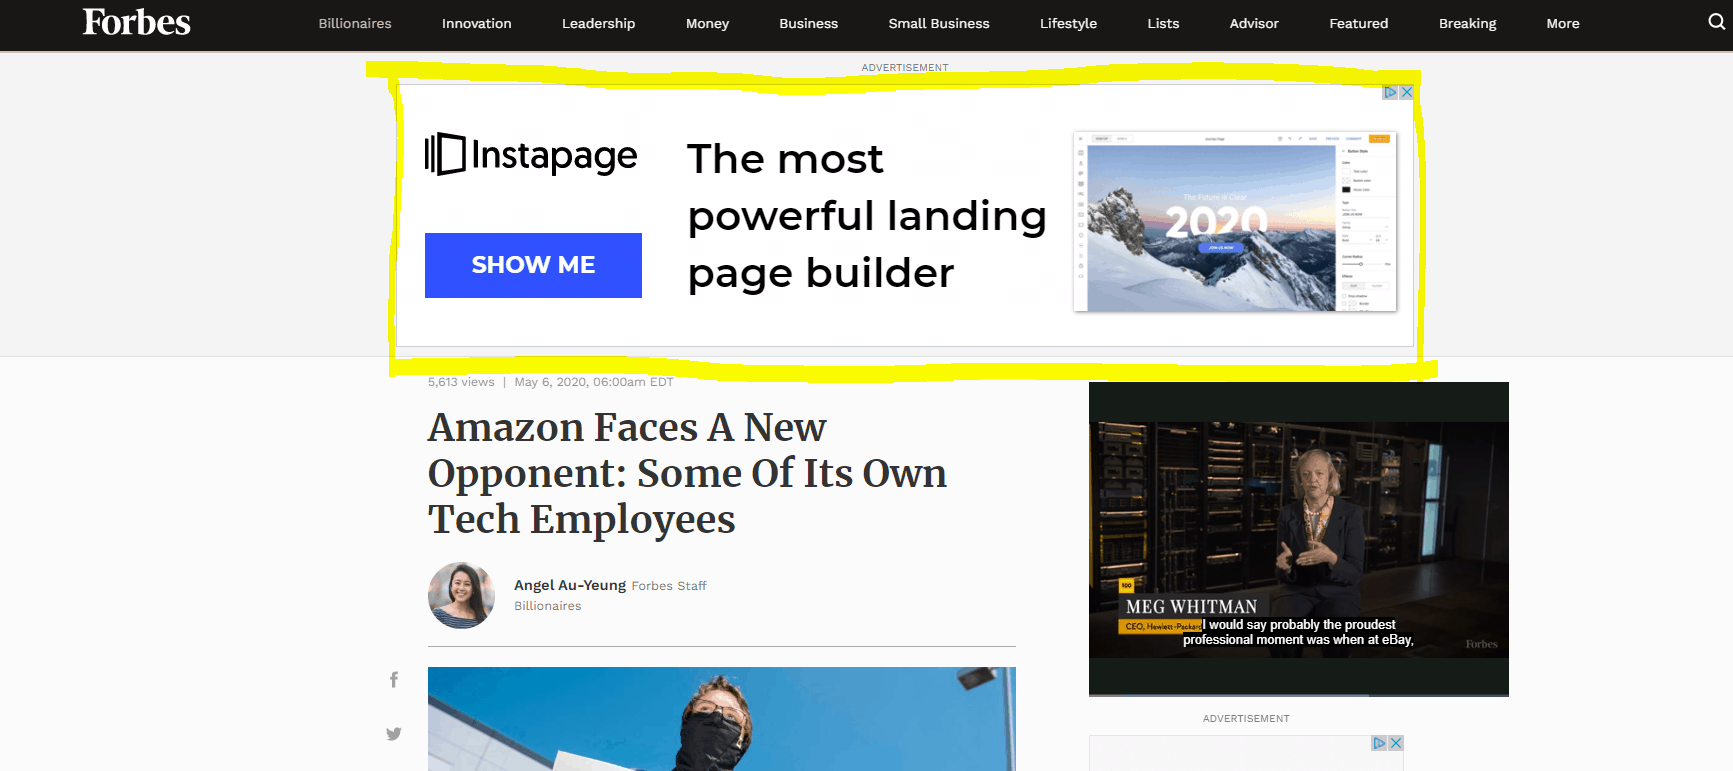 Image showing Instapage ad placement on Forbes blog